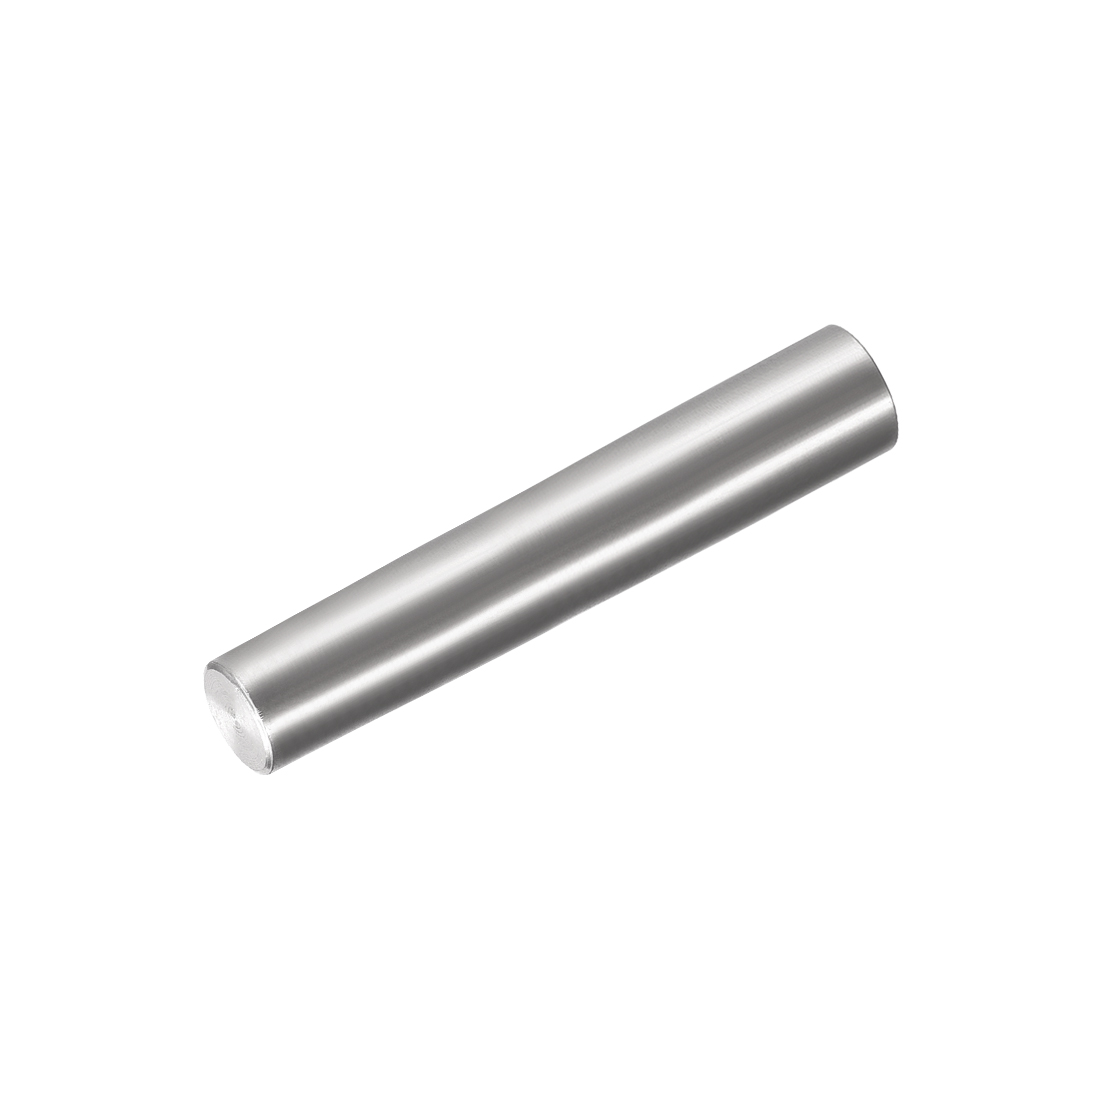 8mm x 45mm 1:50 Taper Pin 304 Stainless Steel Shelf Support Pin Fasten Elements